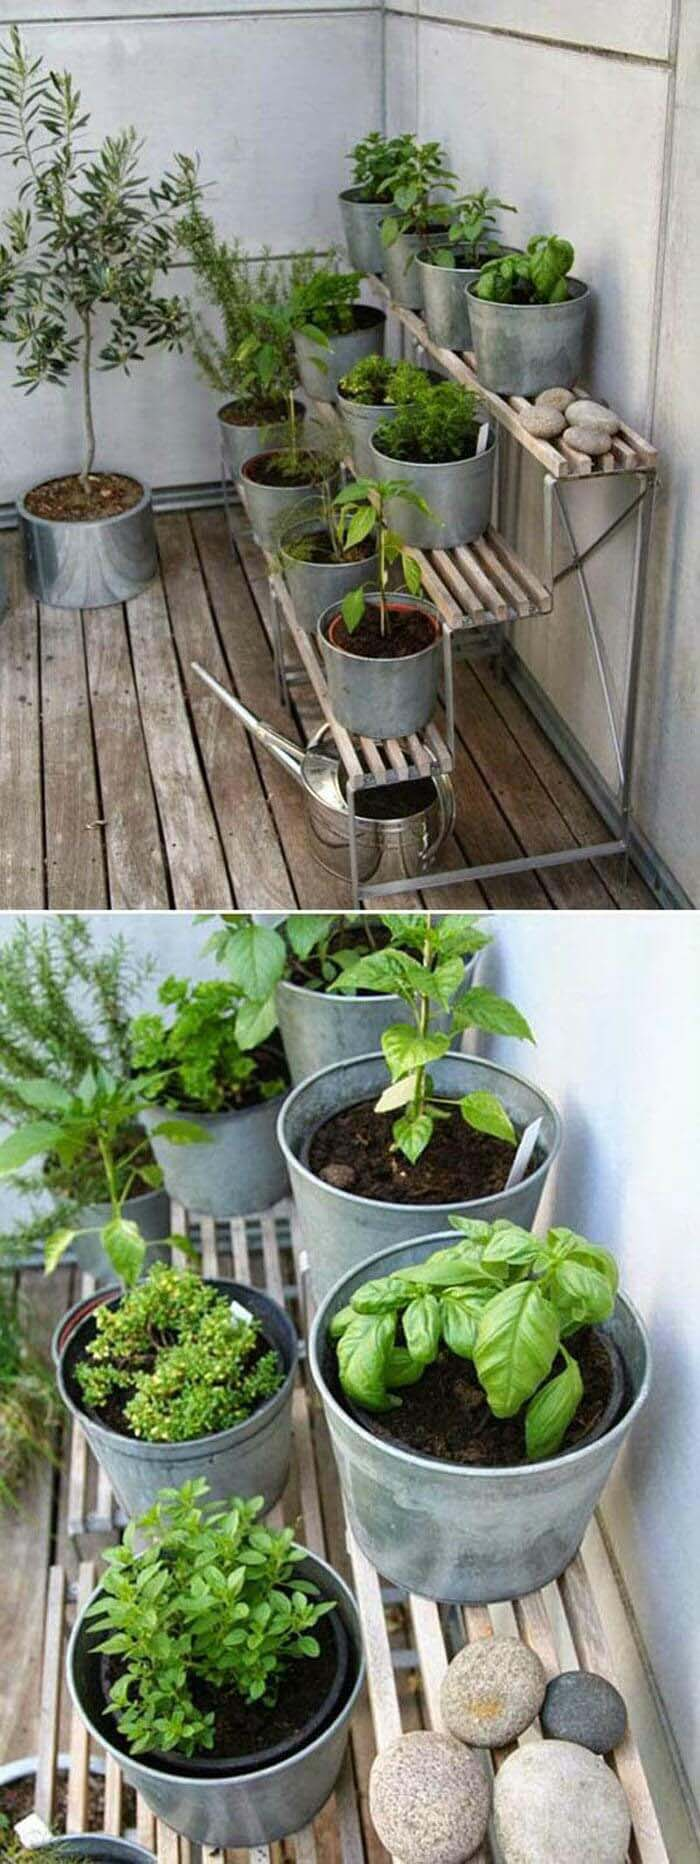 'Step-Up' Herb Garden #diy #herbgarden #herbs #garden #ideas #decorhomeideas